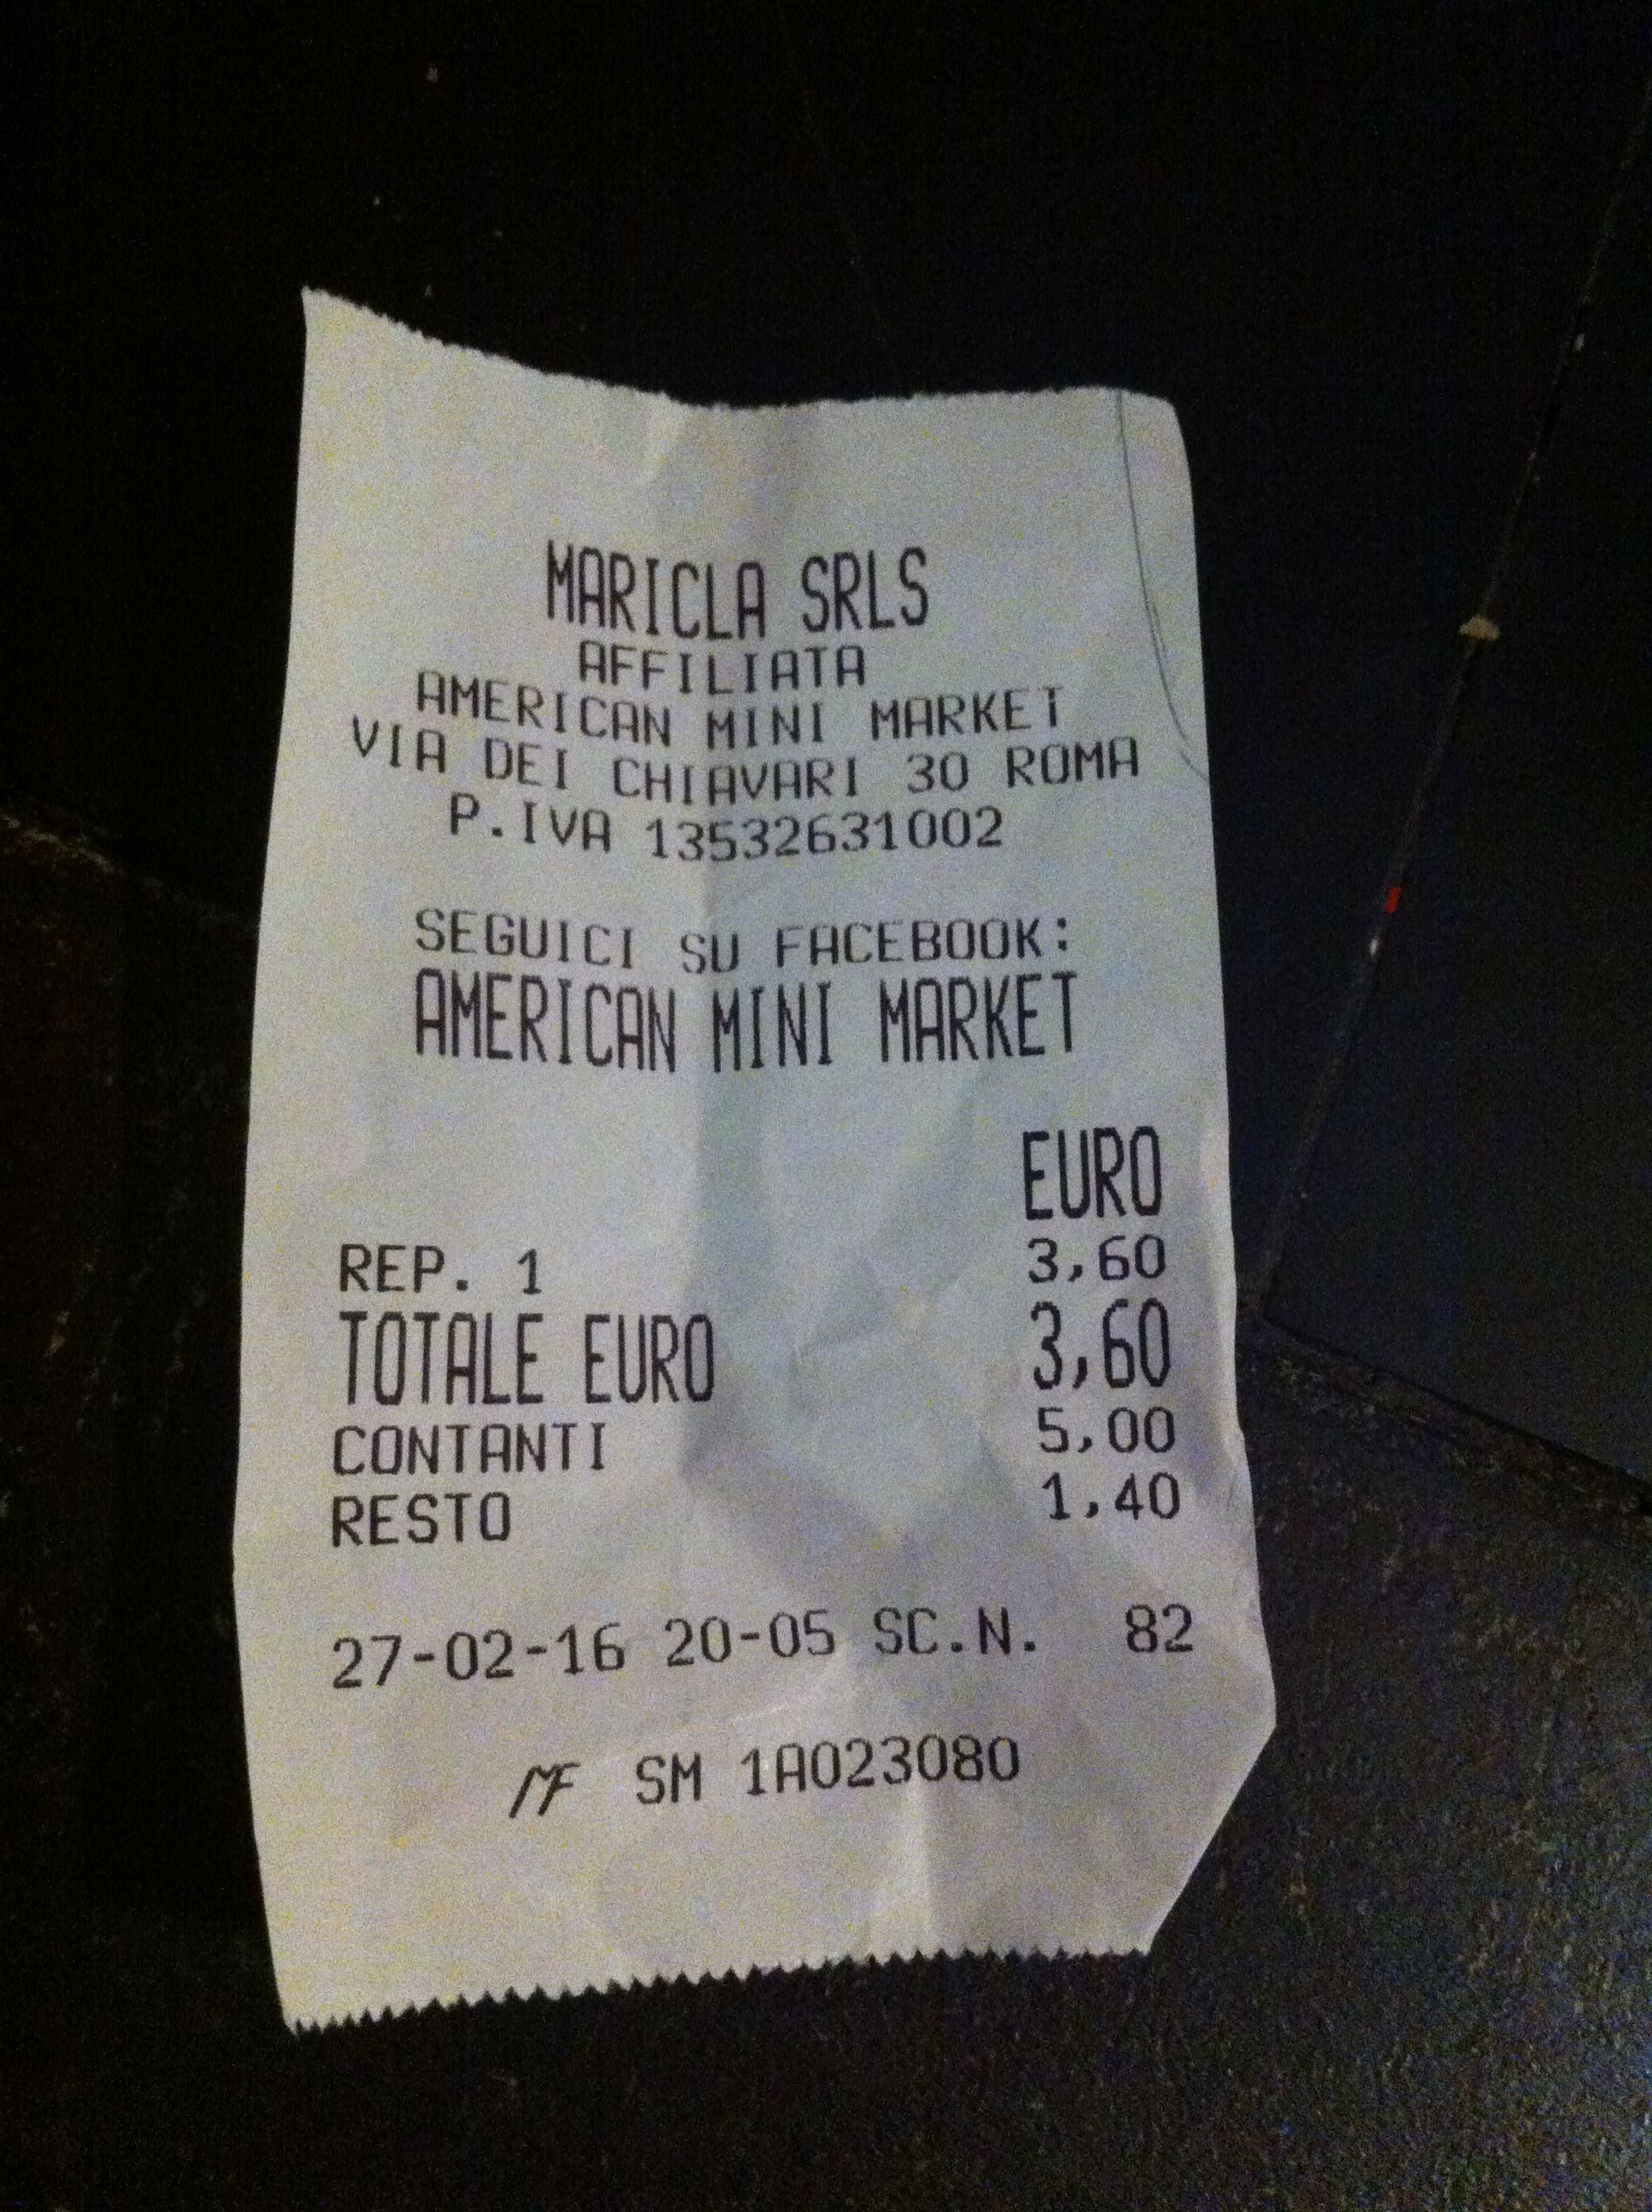 Receipt in American Mini Market